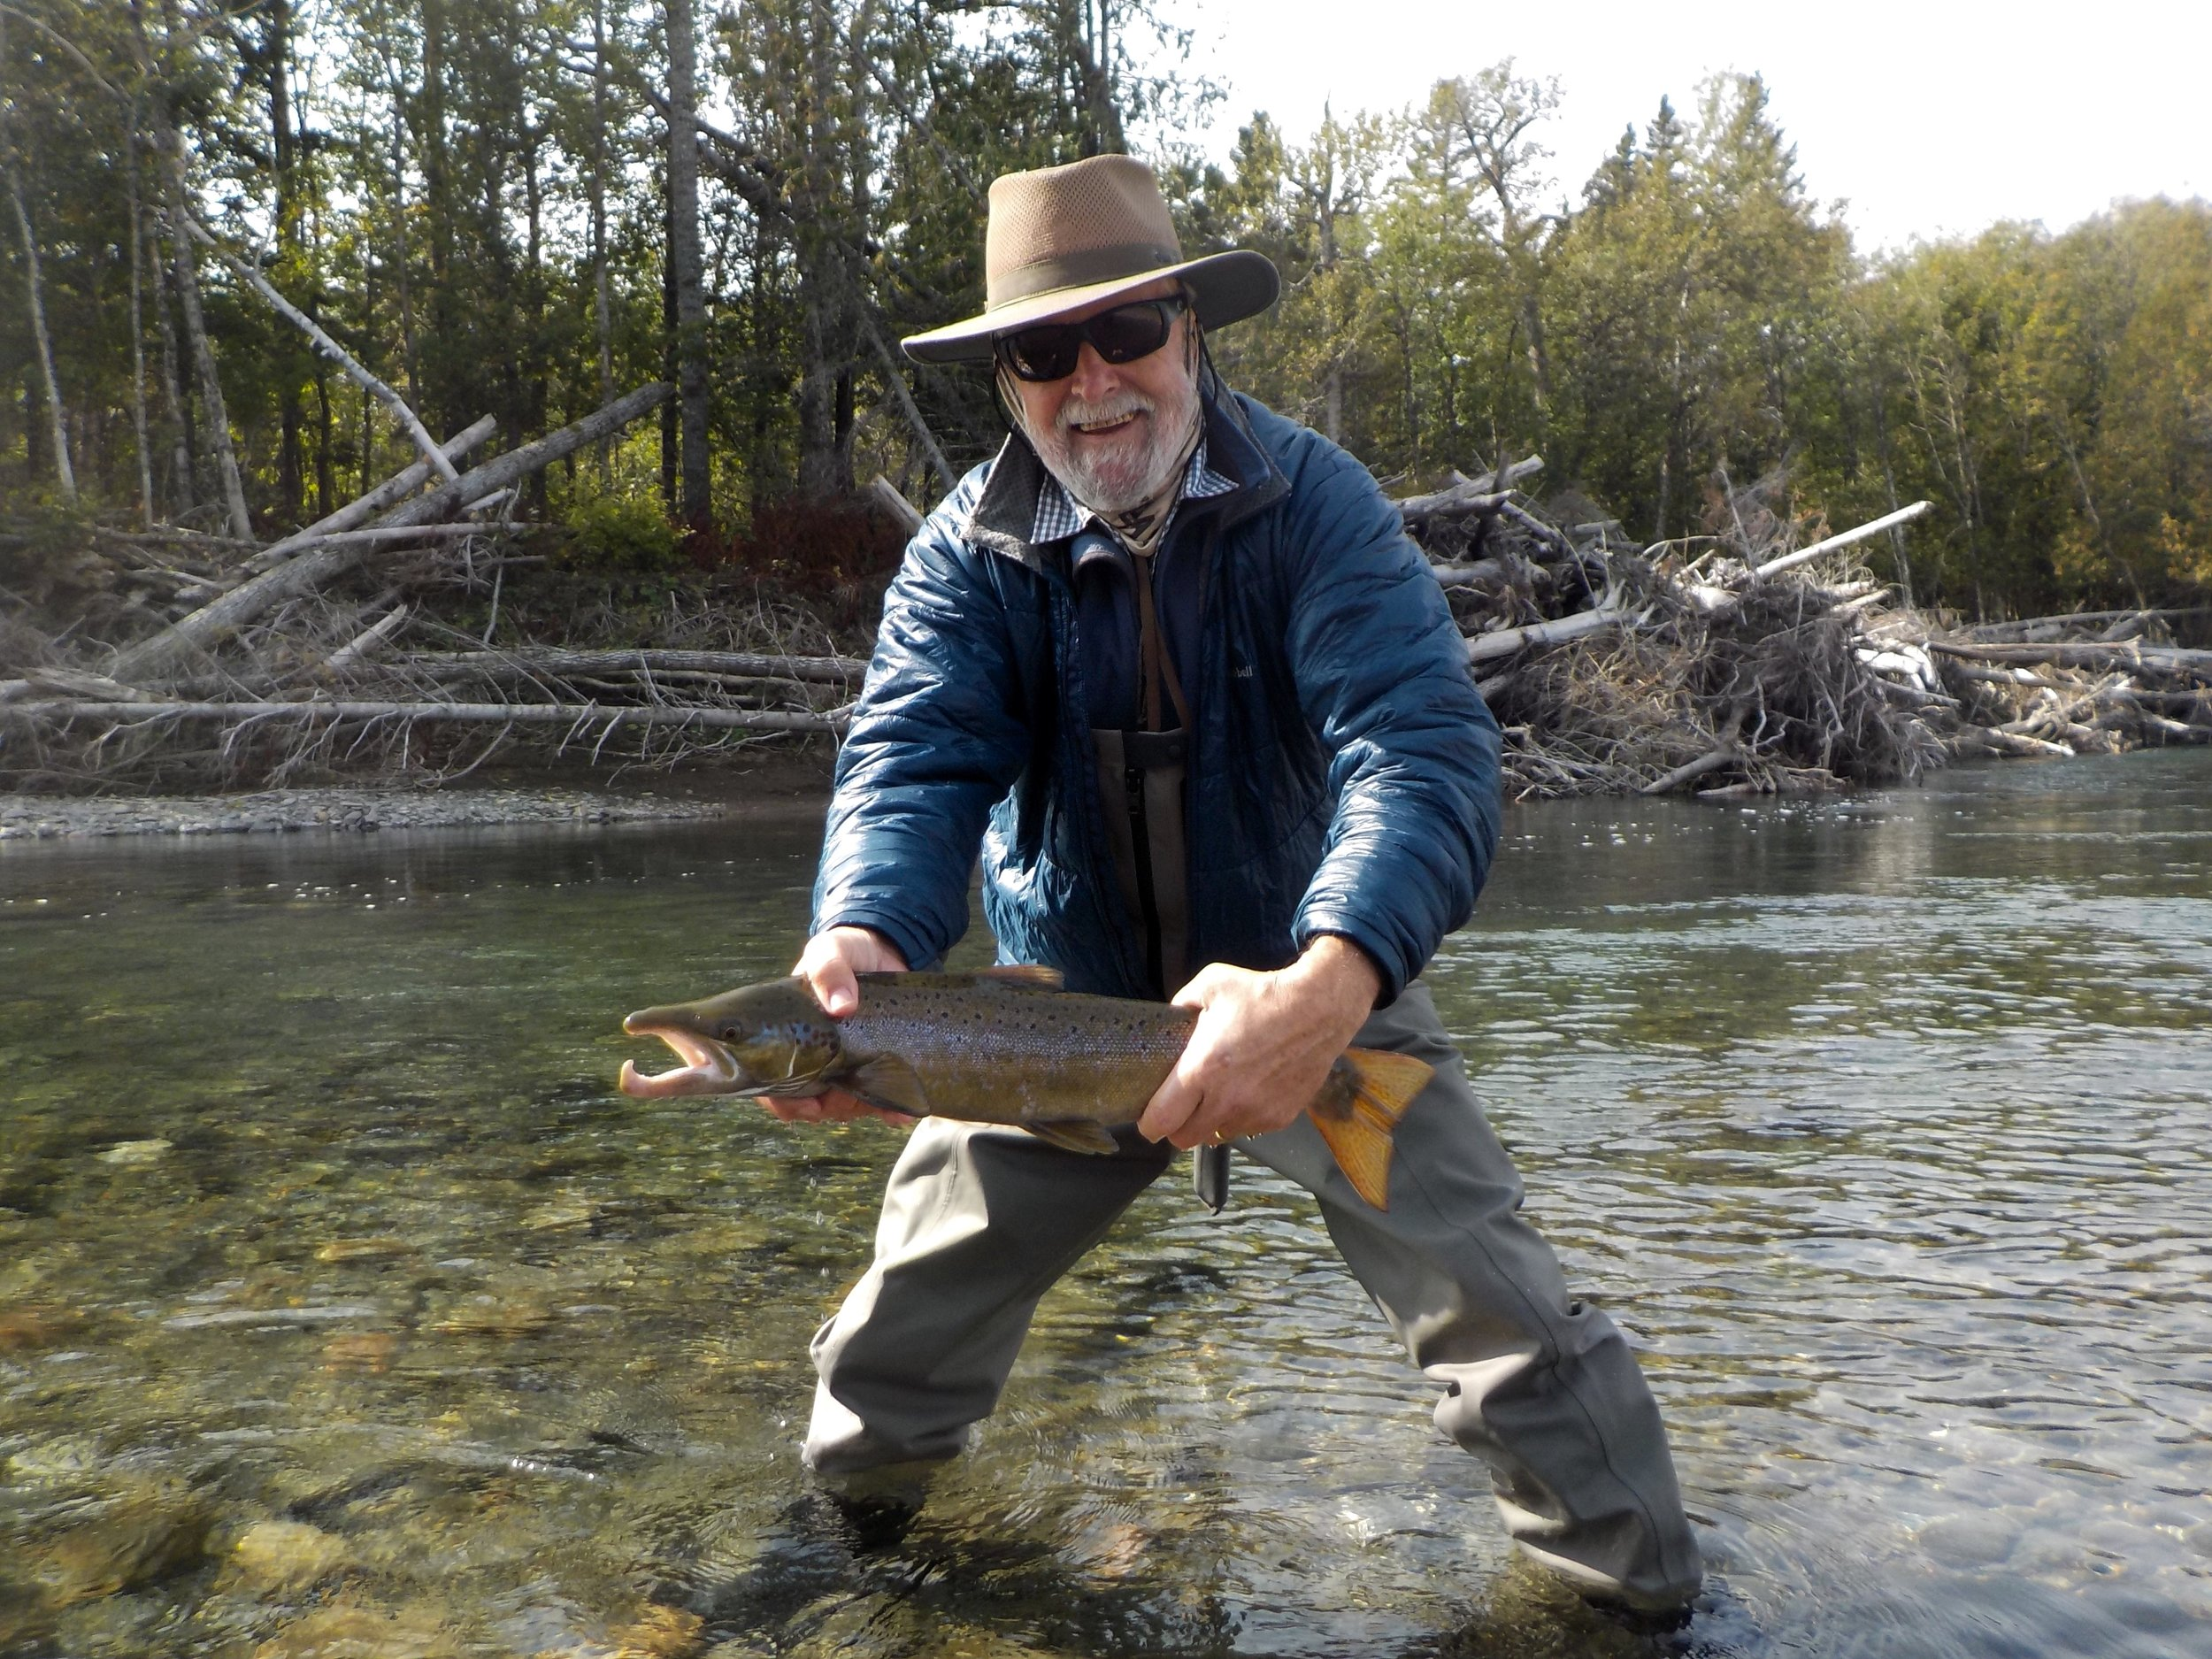 Jim Fowler with his first salmon of the season, nice one Jim!